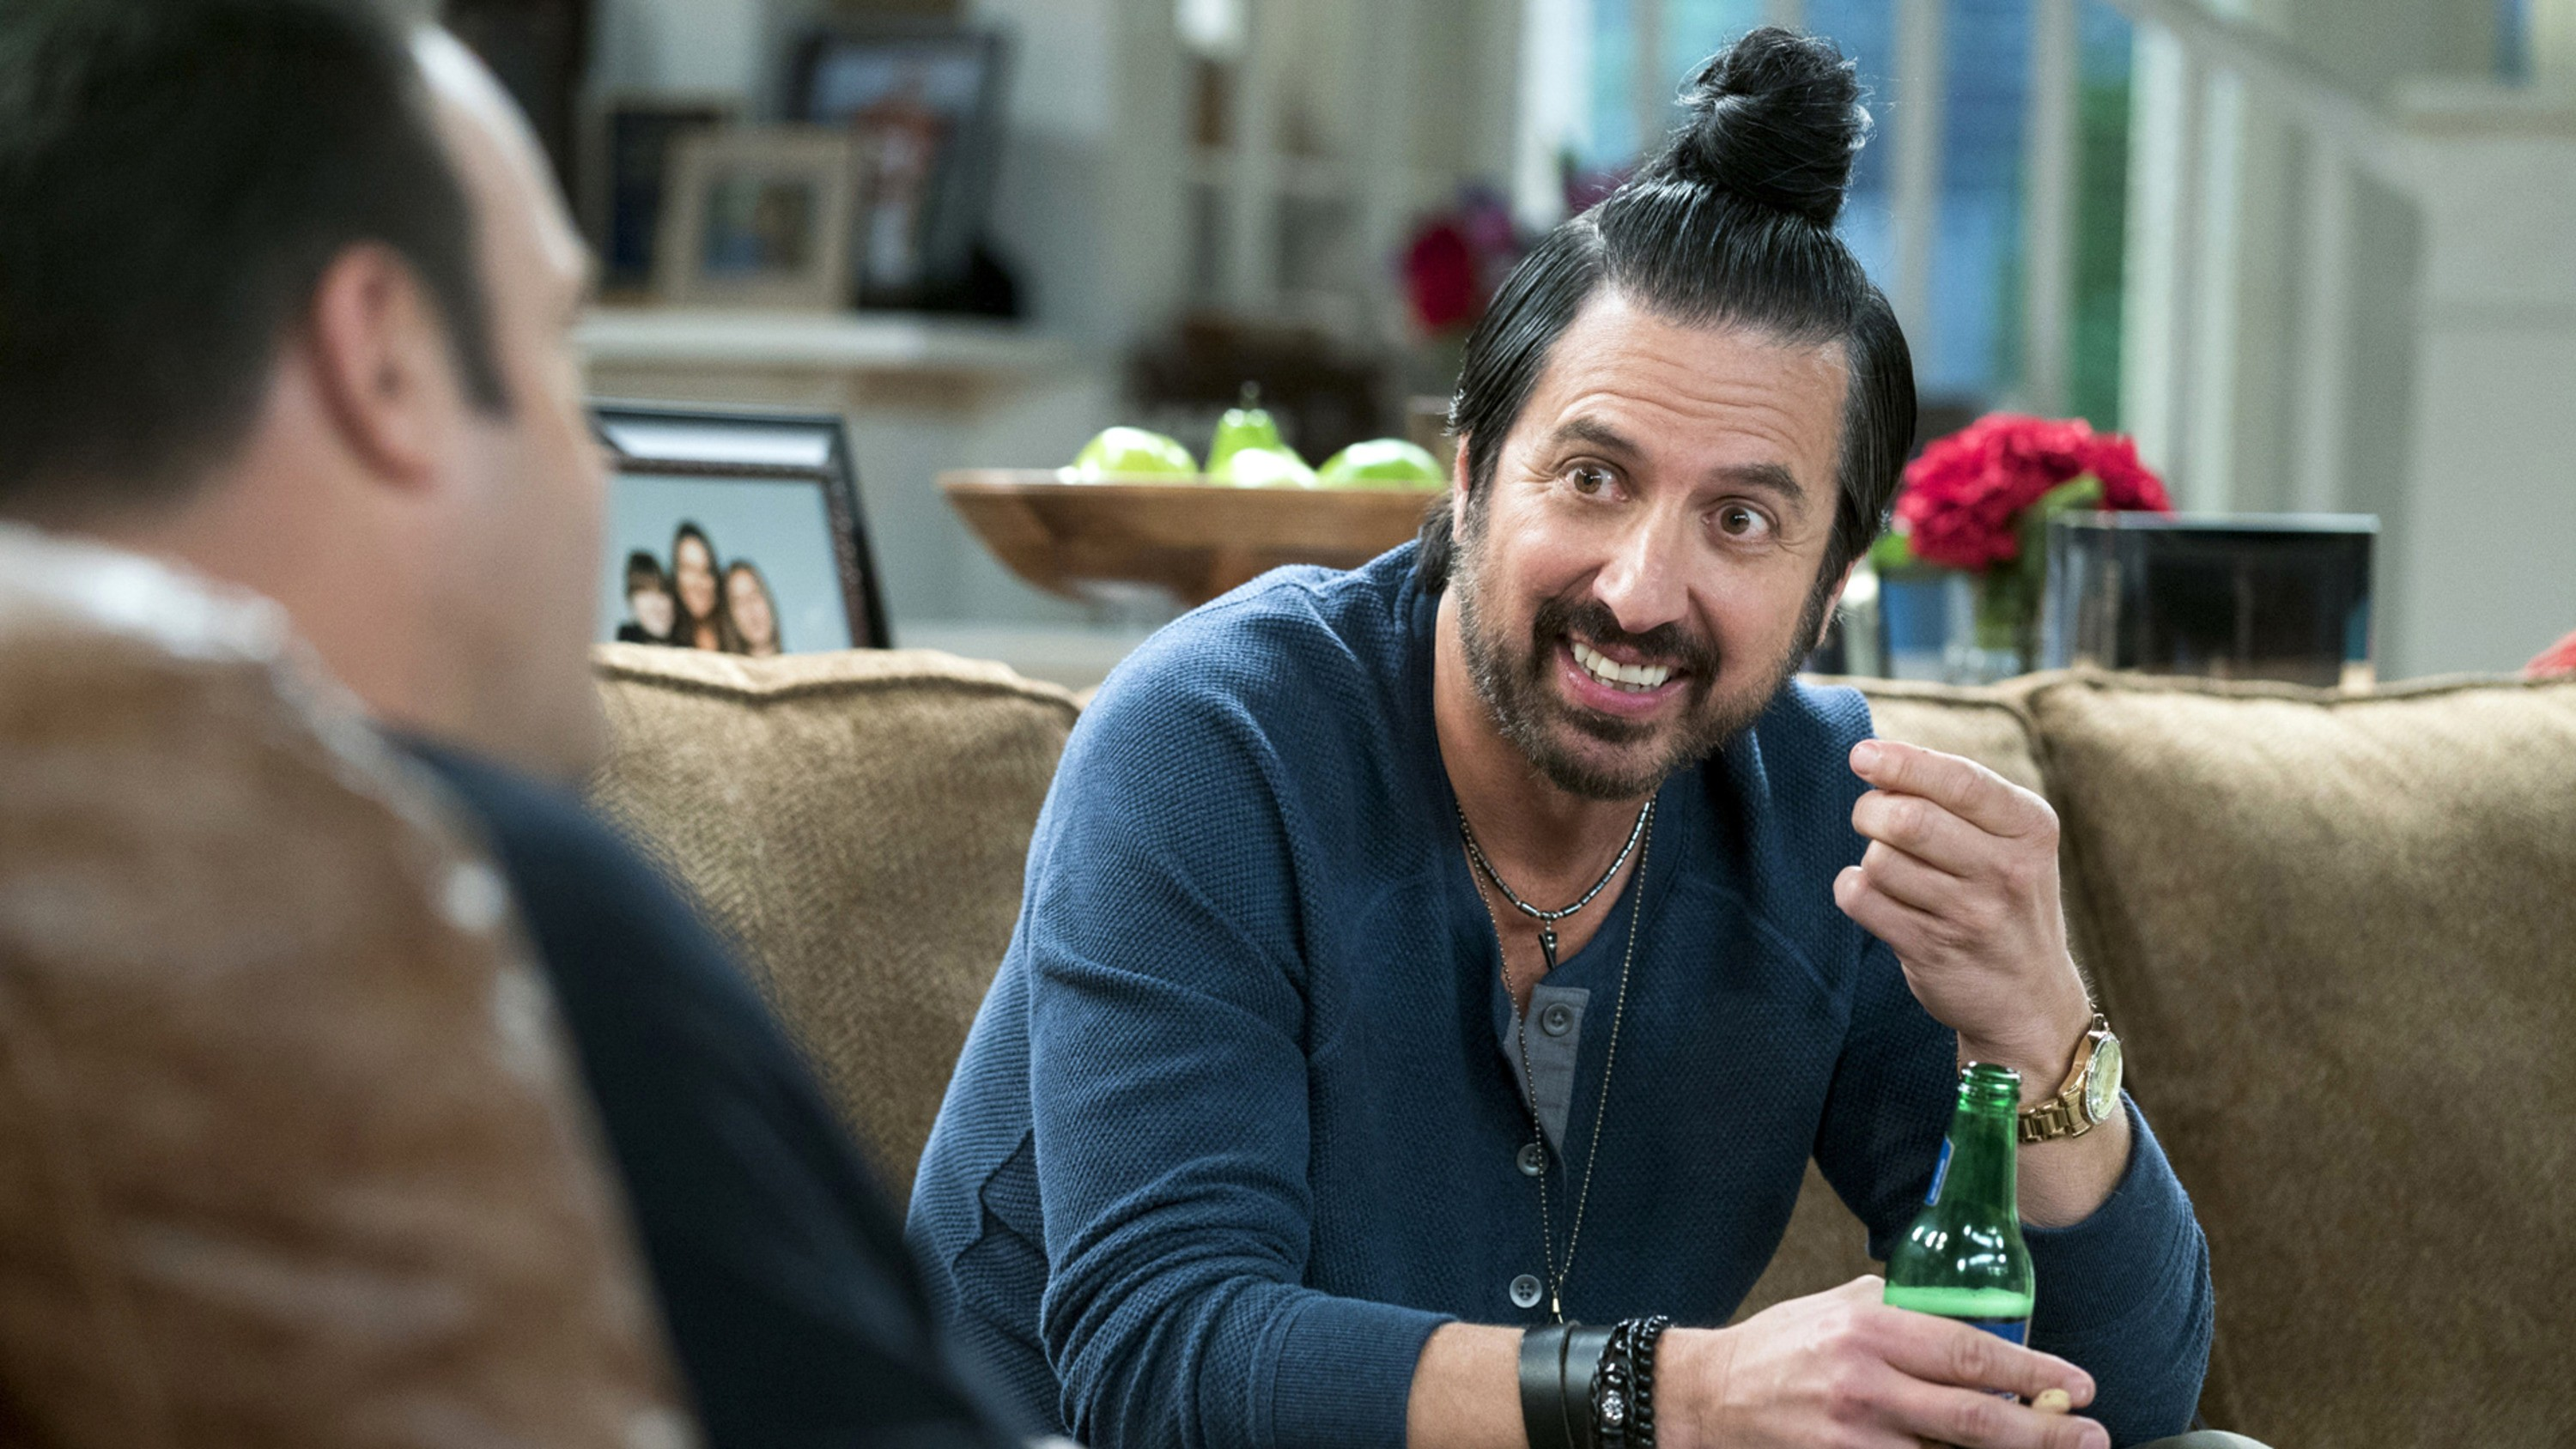 Ray Romano and his super stylish bun hairstyle.